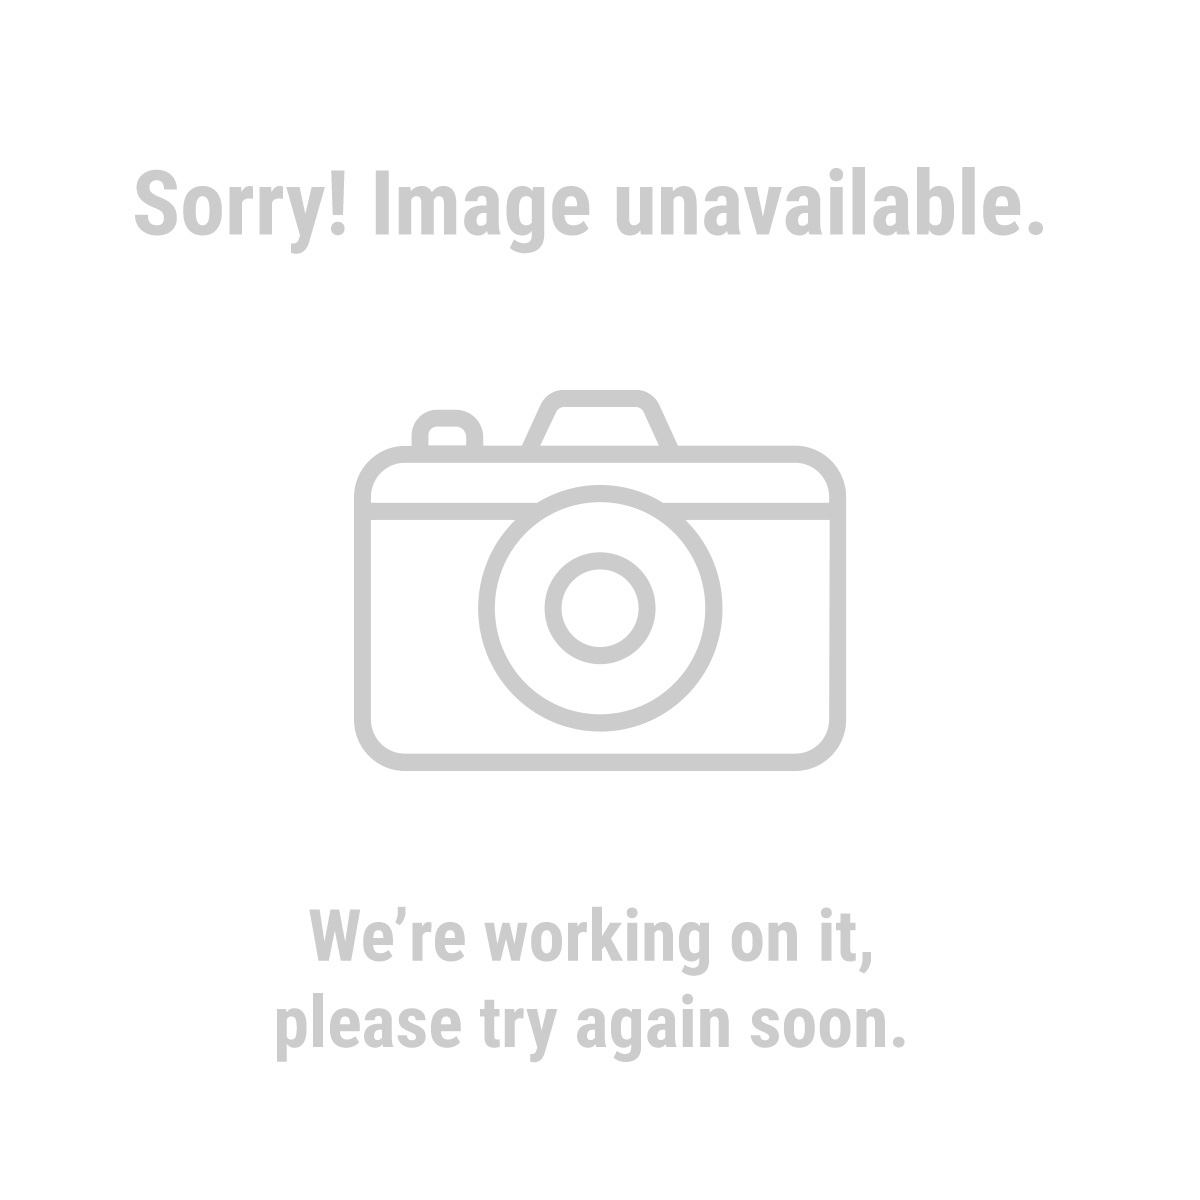 Drill Master 63005 7-1/4 in. 10 Amp Circular Saw